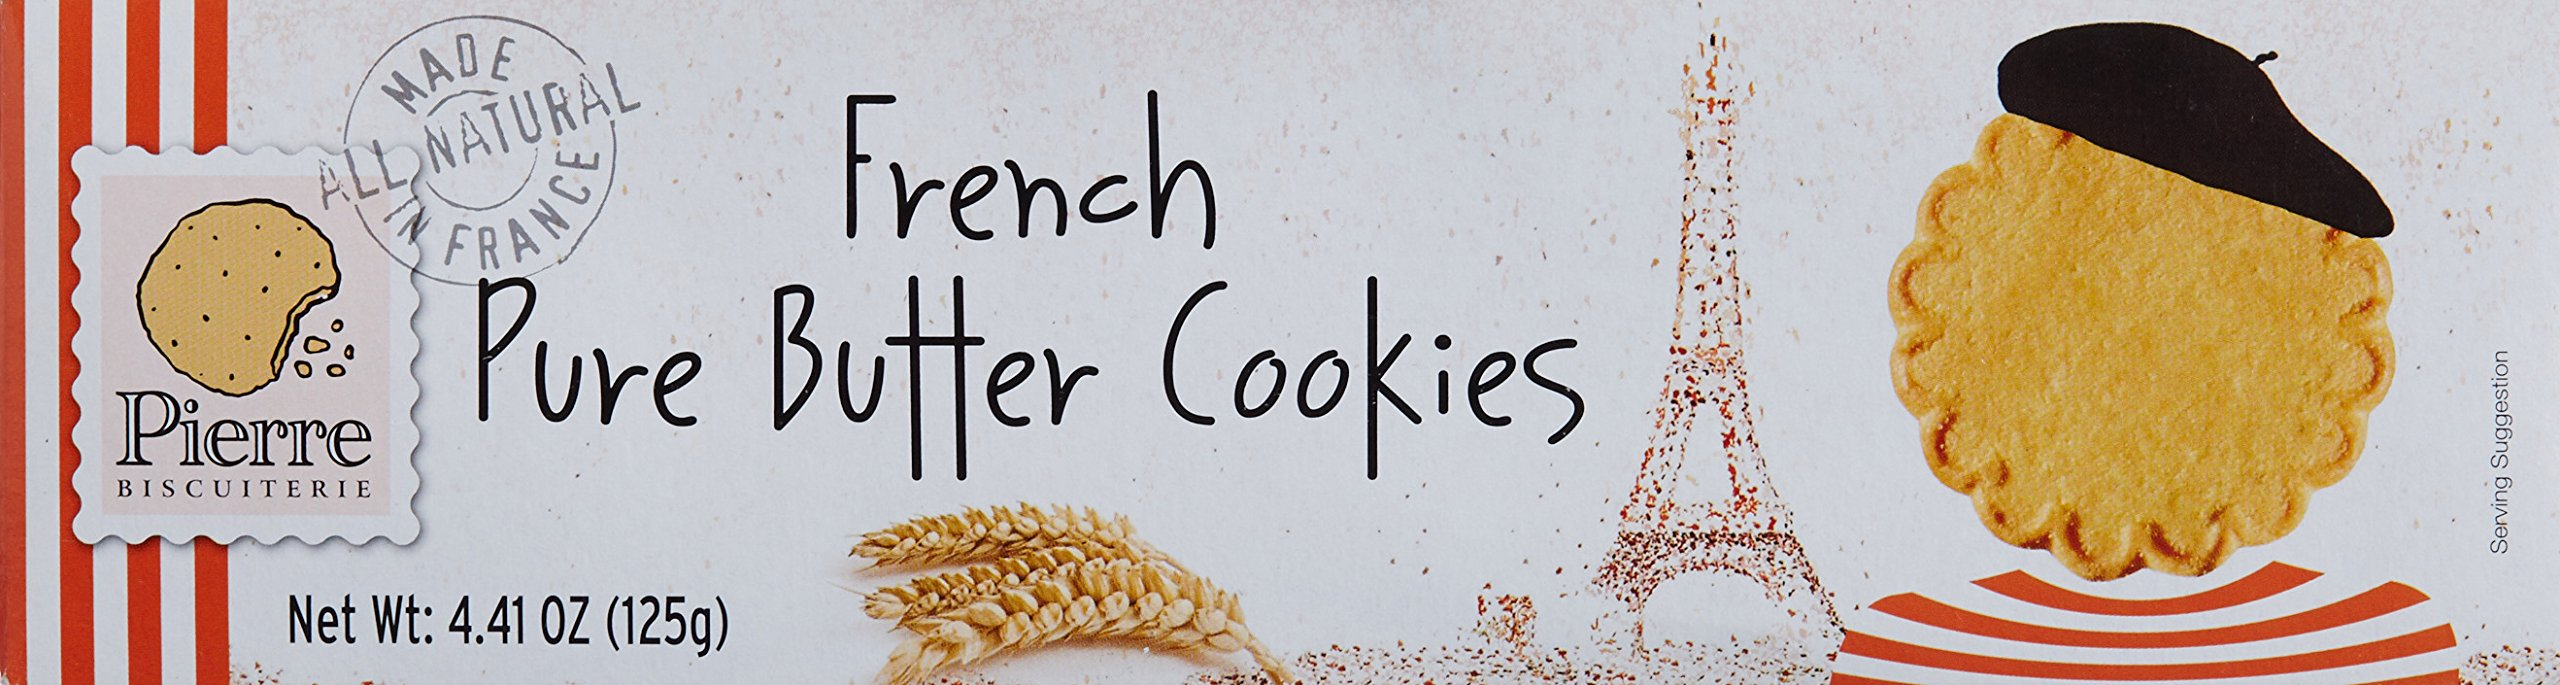 Biscuiterie Pierre All Natural Butter Cookies